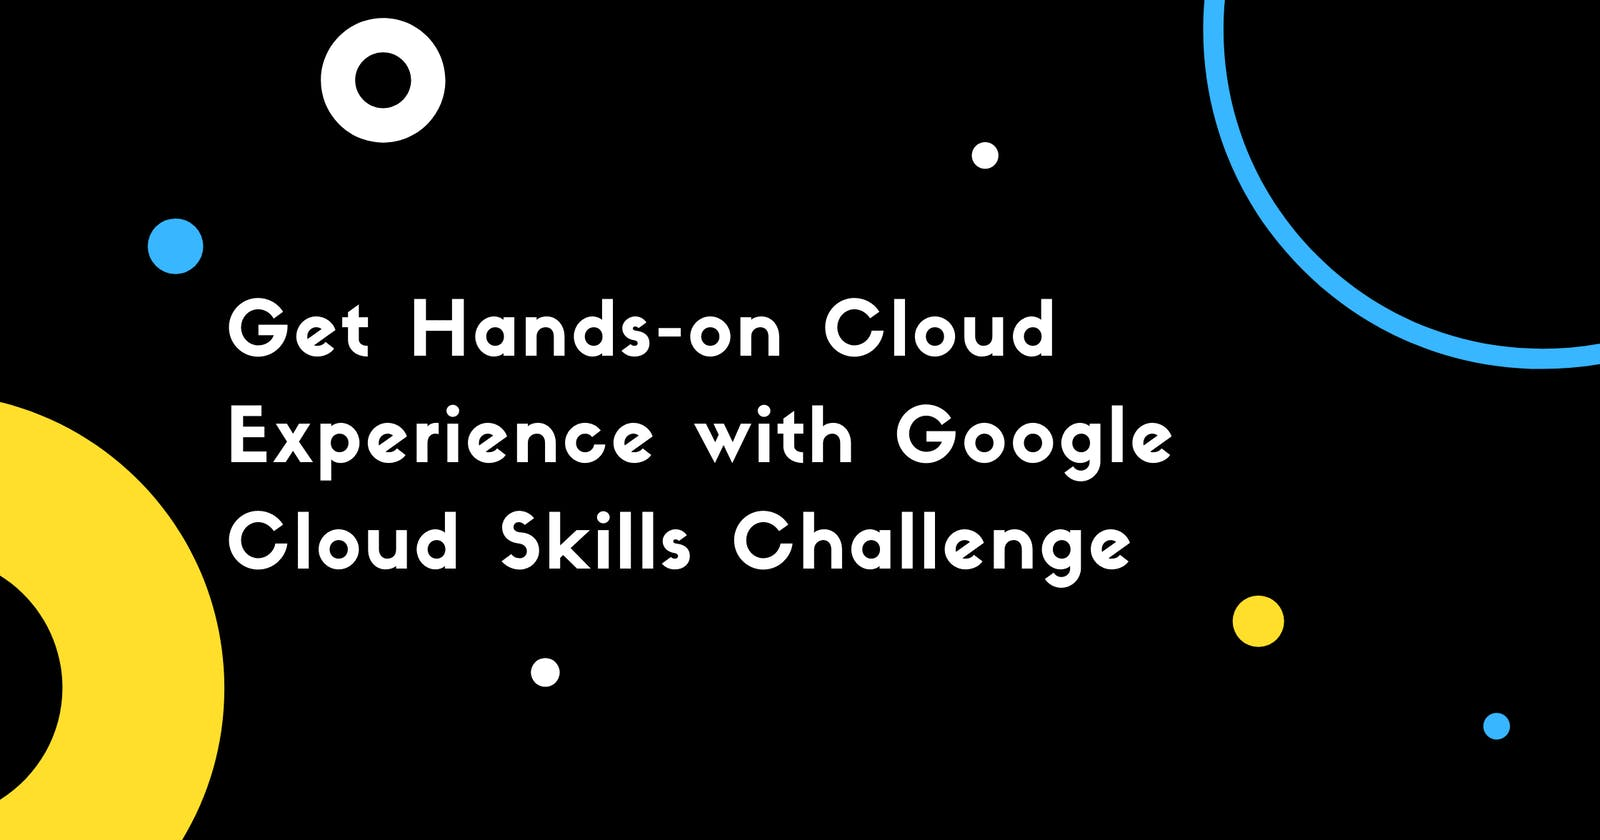 Get Hands-on Cloud Experience with Google Cloud Skills Challenge